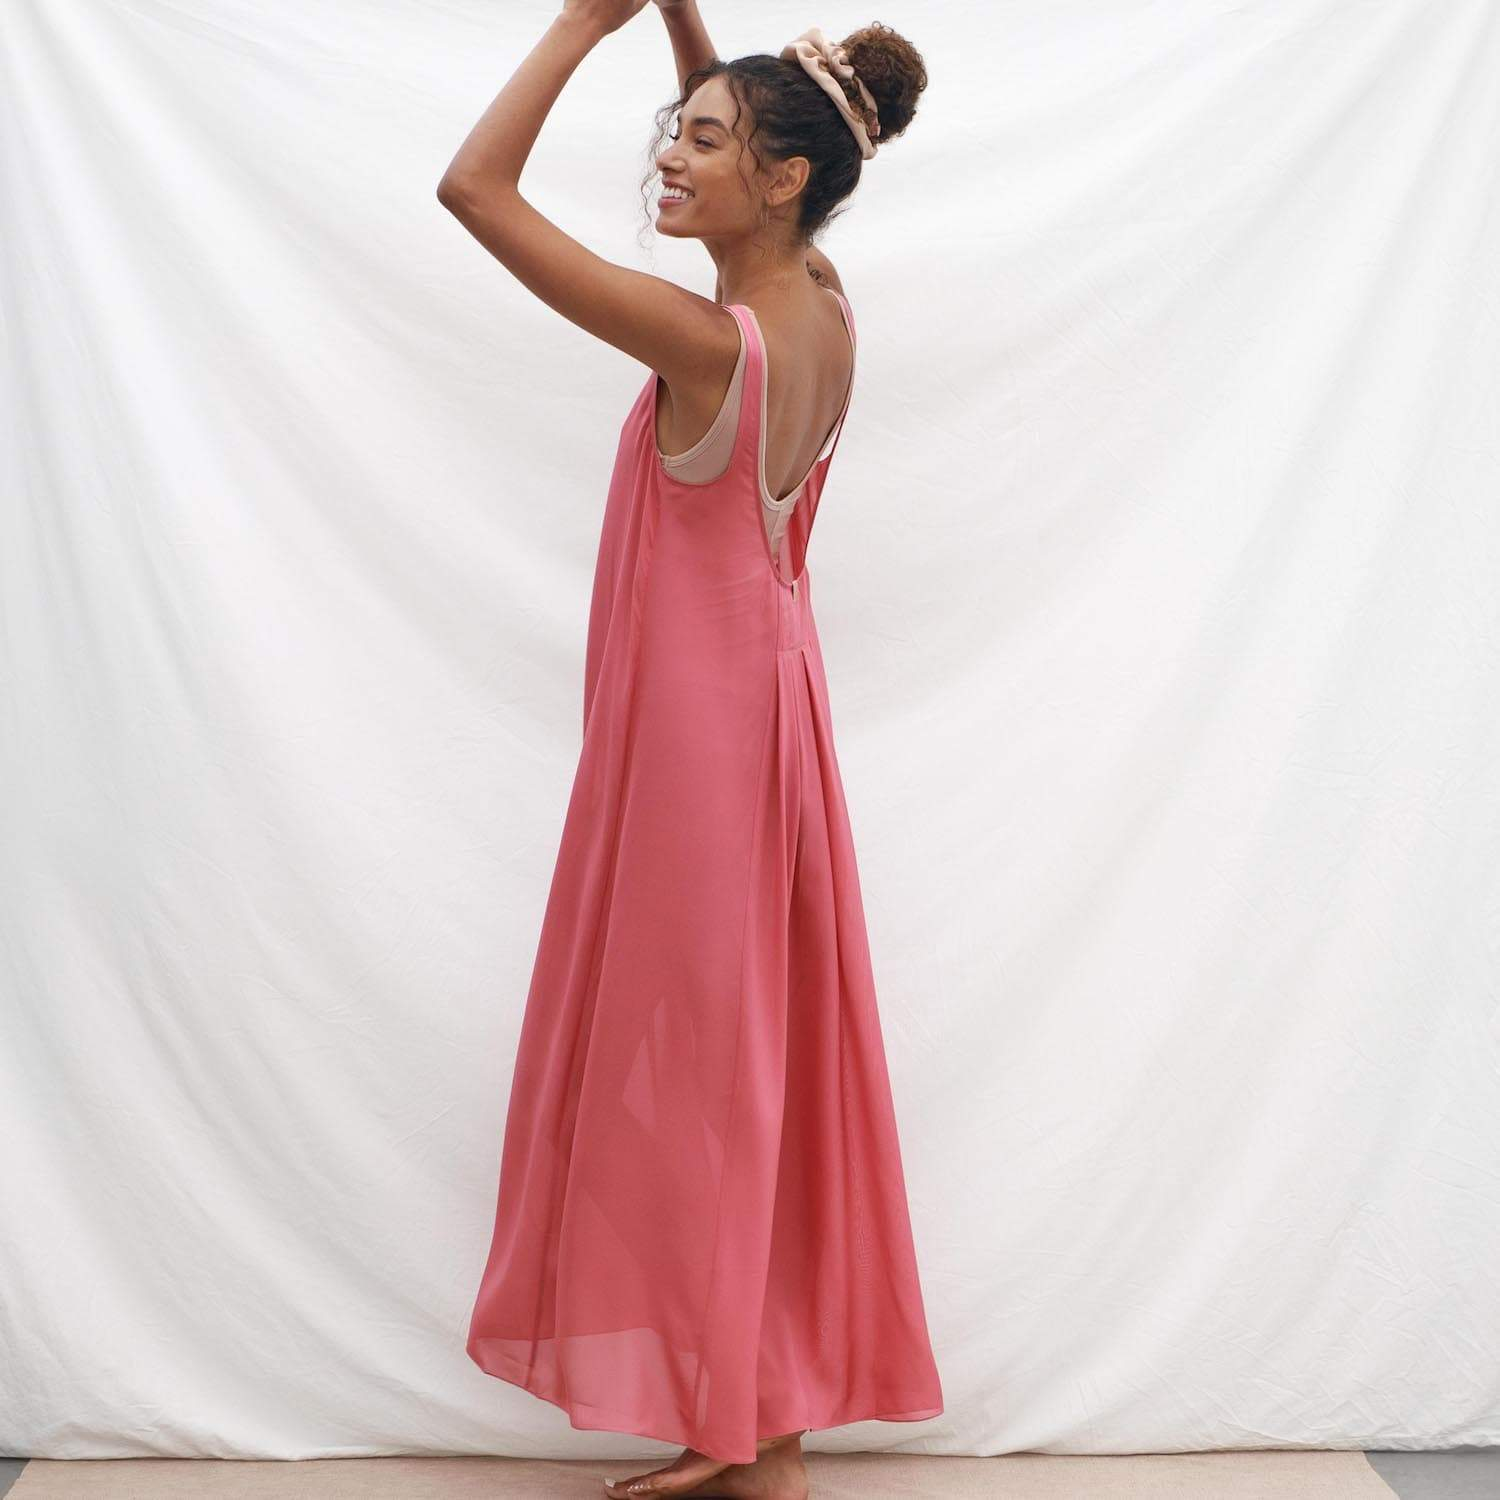 Lunya Sleepwear Prima Silk Chiffon Overlay Dress - #Rose Petal